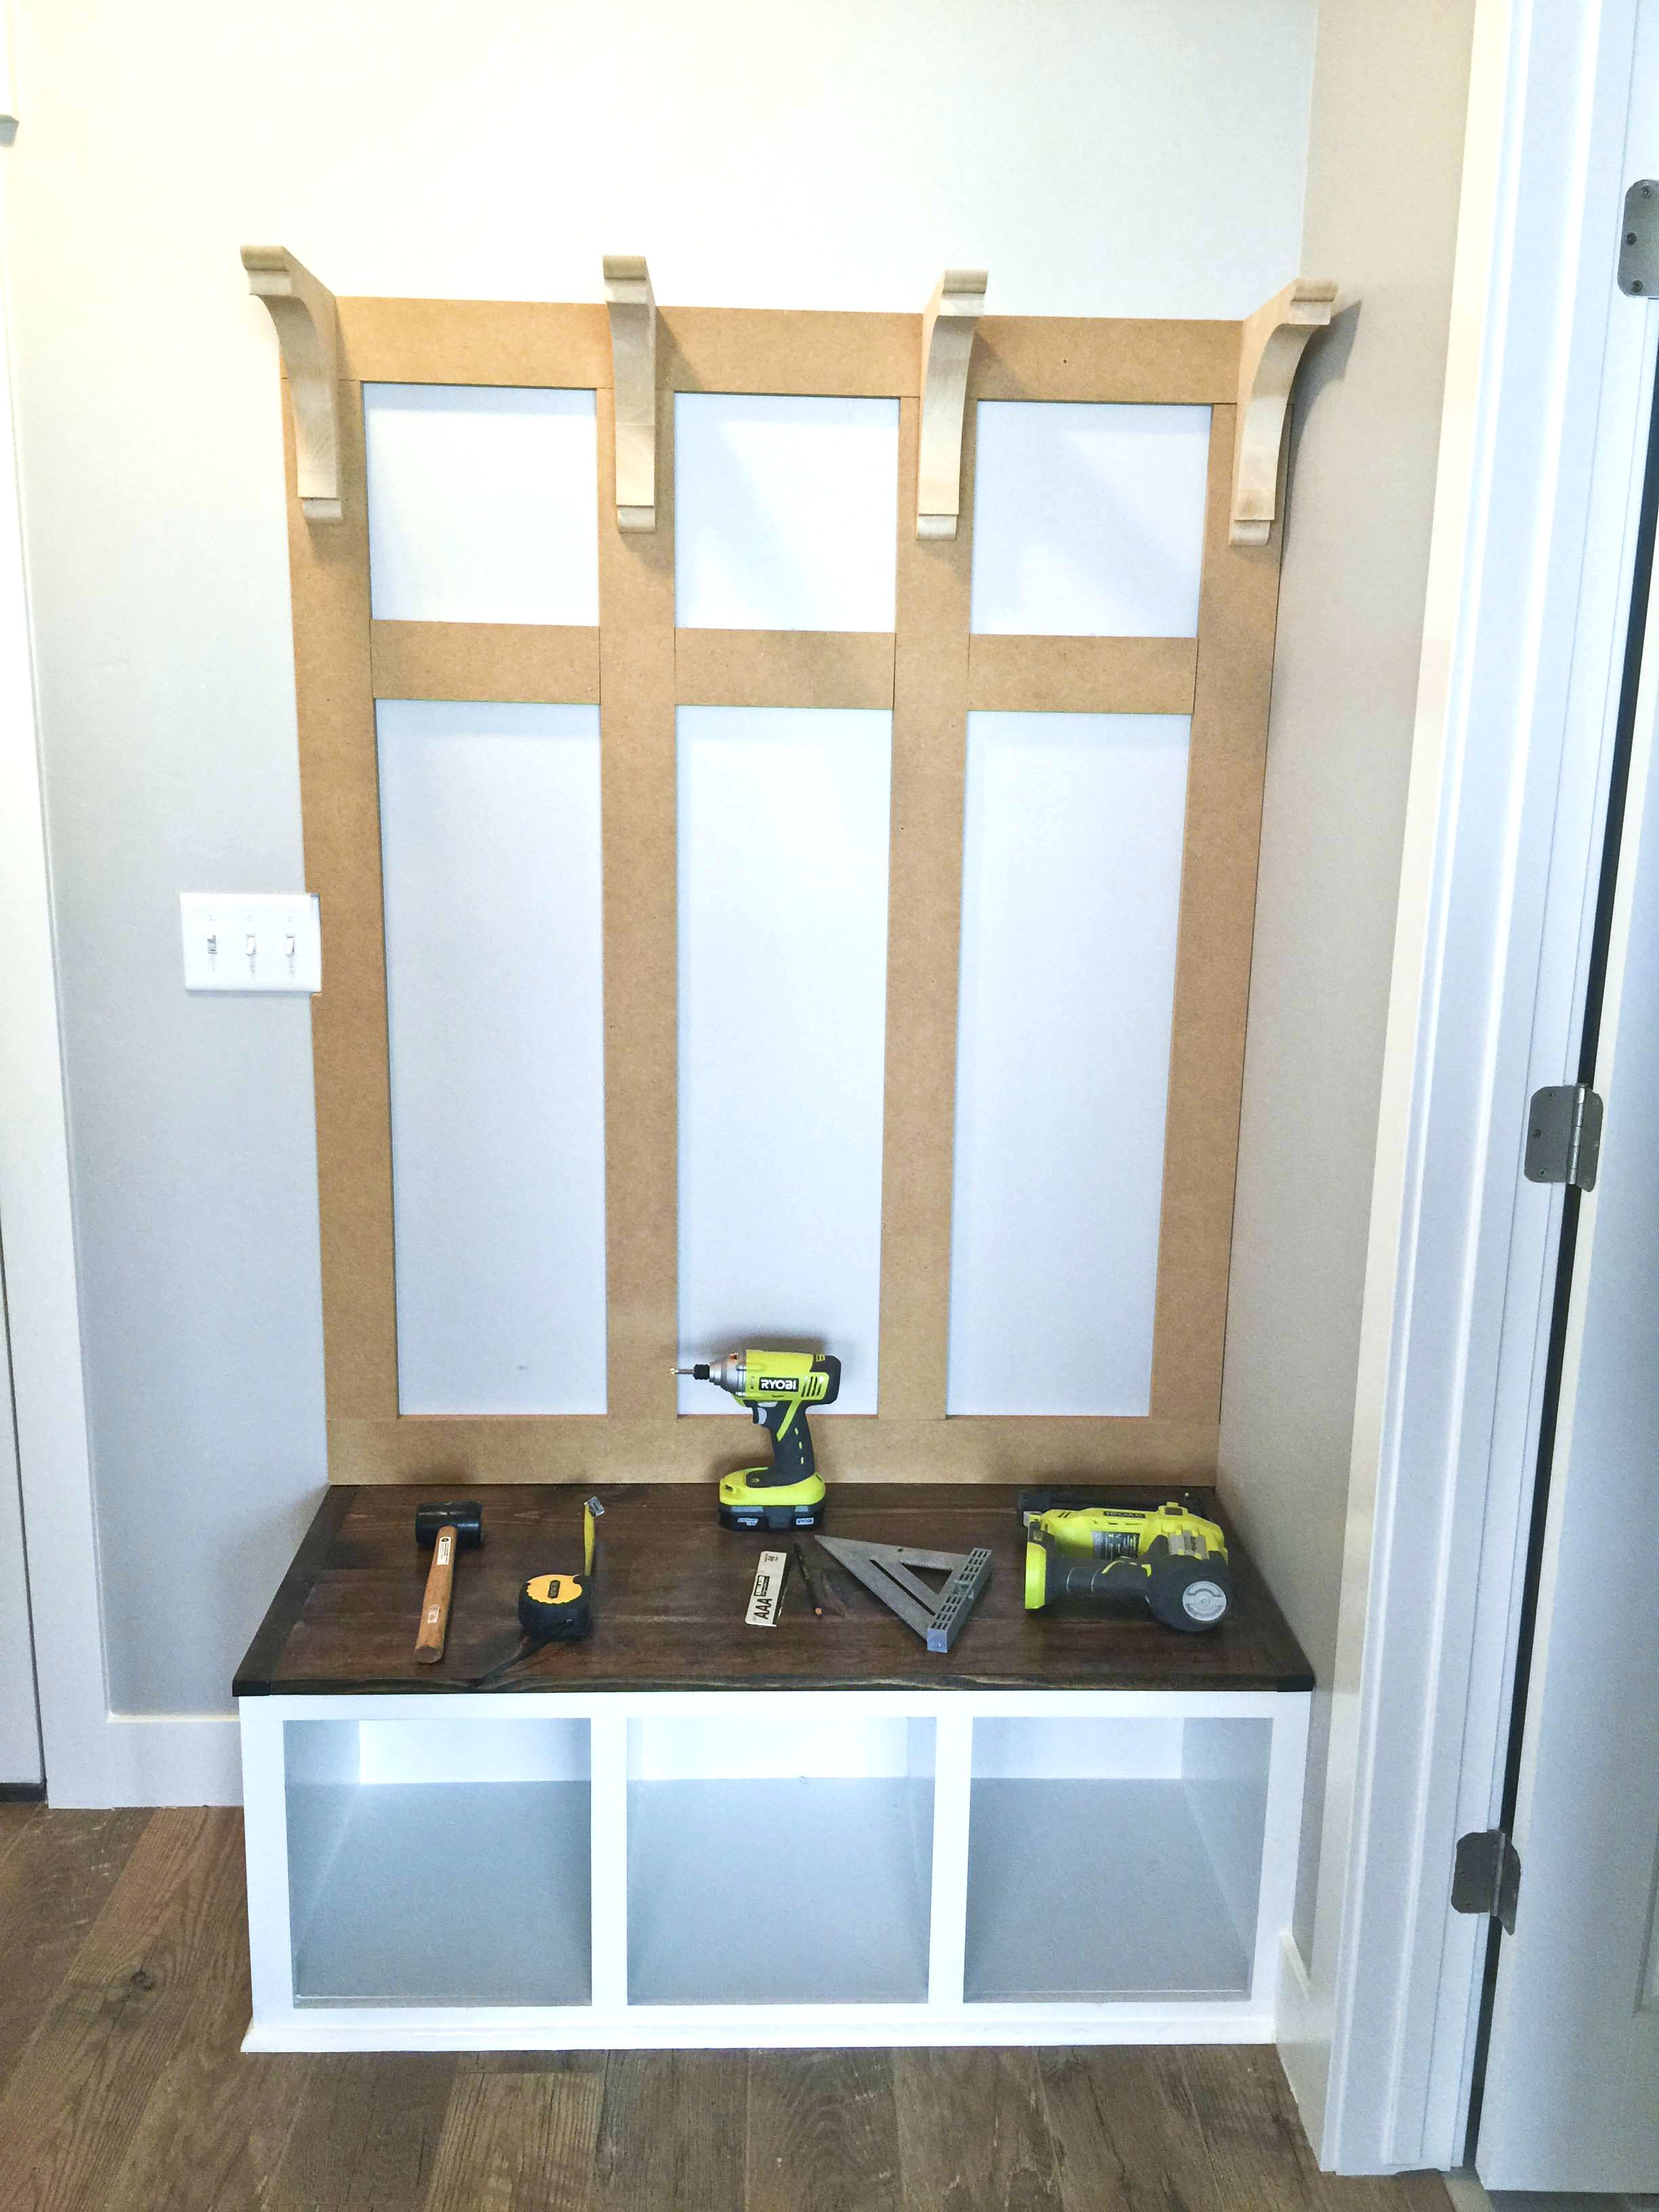 Merveilleux Diy Mudroom Bench Part 2 Entryway Bench Plans Ana White Entryway Bench Plans  Free Mudroom Bench Plans Diy Benches Mudroom Bench Designs